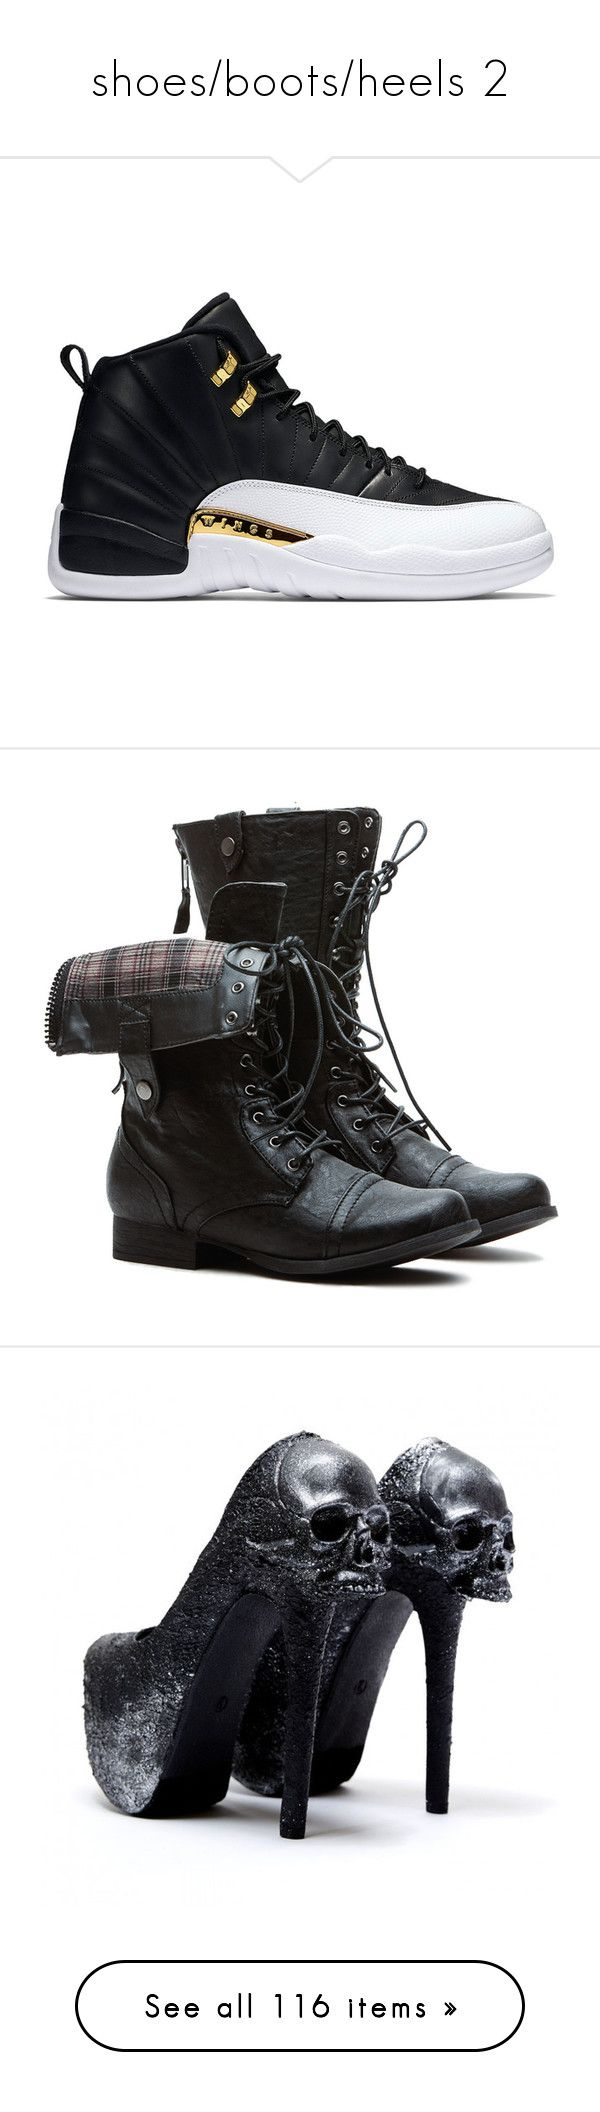 """""""shoes/boots/heels 2"""" by zoesears on Polyvore featuring shoes, sneakers, jordans, boots, footwear, combat boots, black military boots, black army boots, army boots and mid-calf boots"""